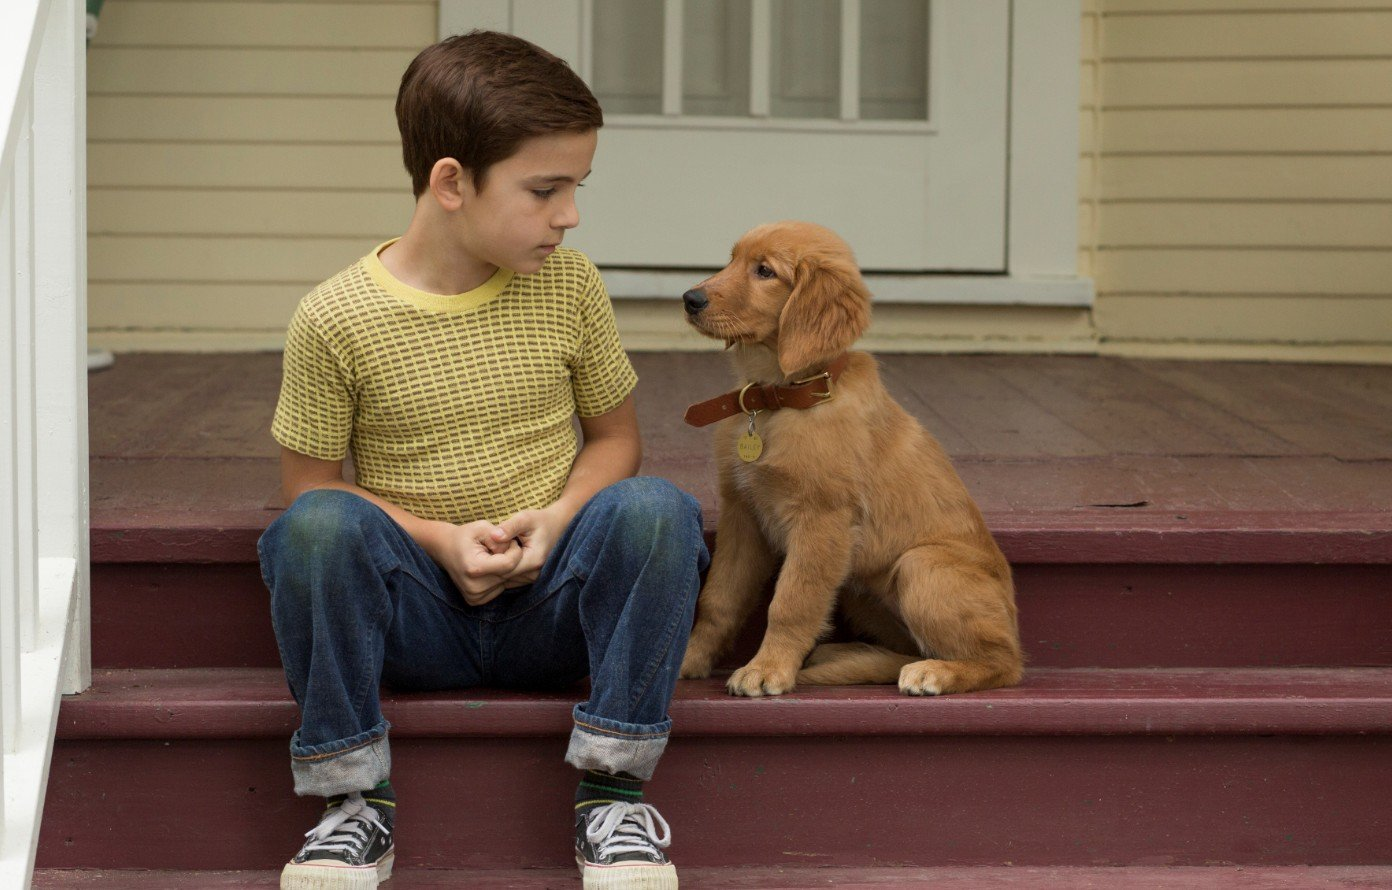 Filmtip - A Dogs Purpose - Beeld Entertainment One 1